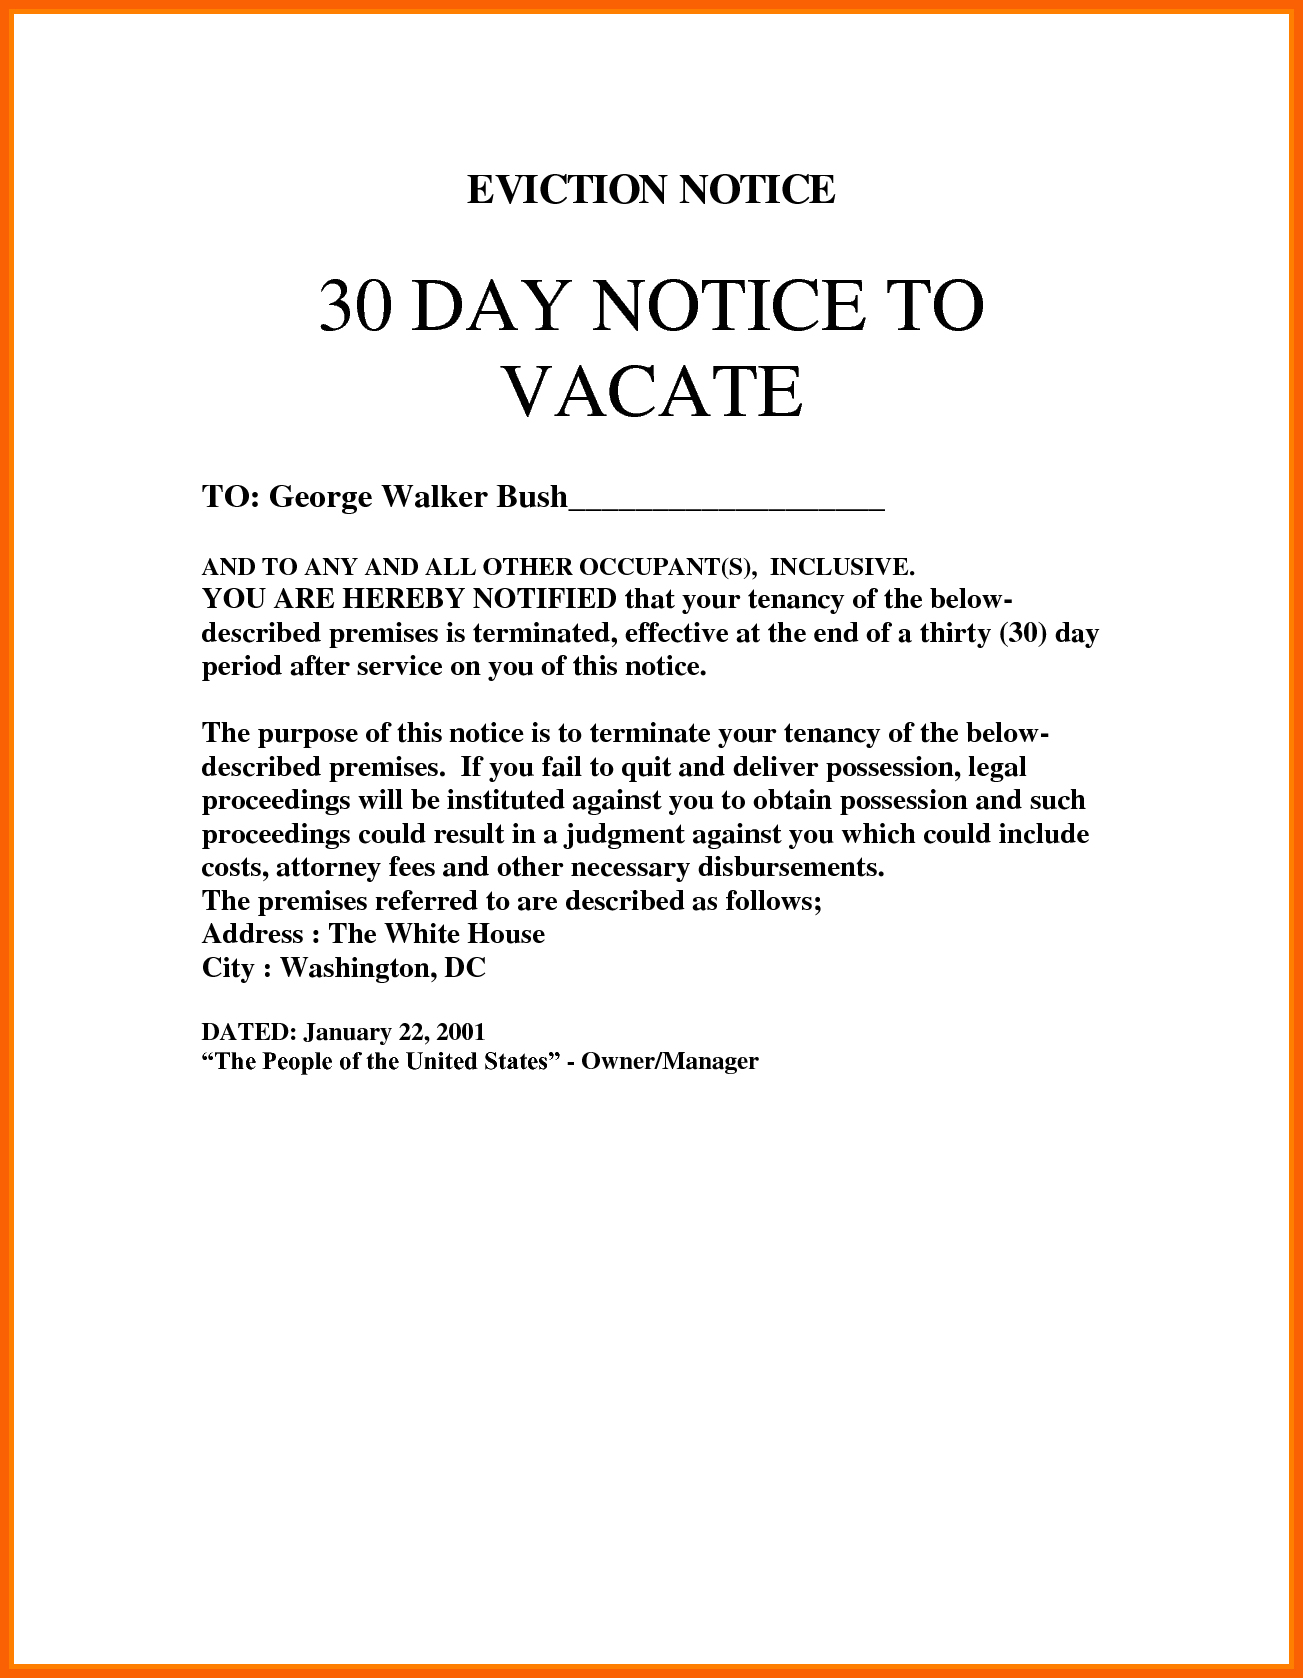 30 Day Eviction Notice Template | Bravebtr - Free Printable Blank Eviction Notice